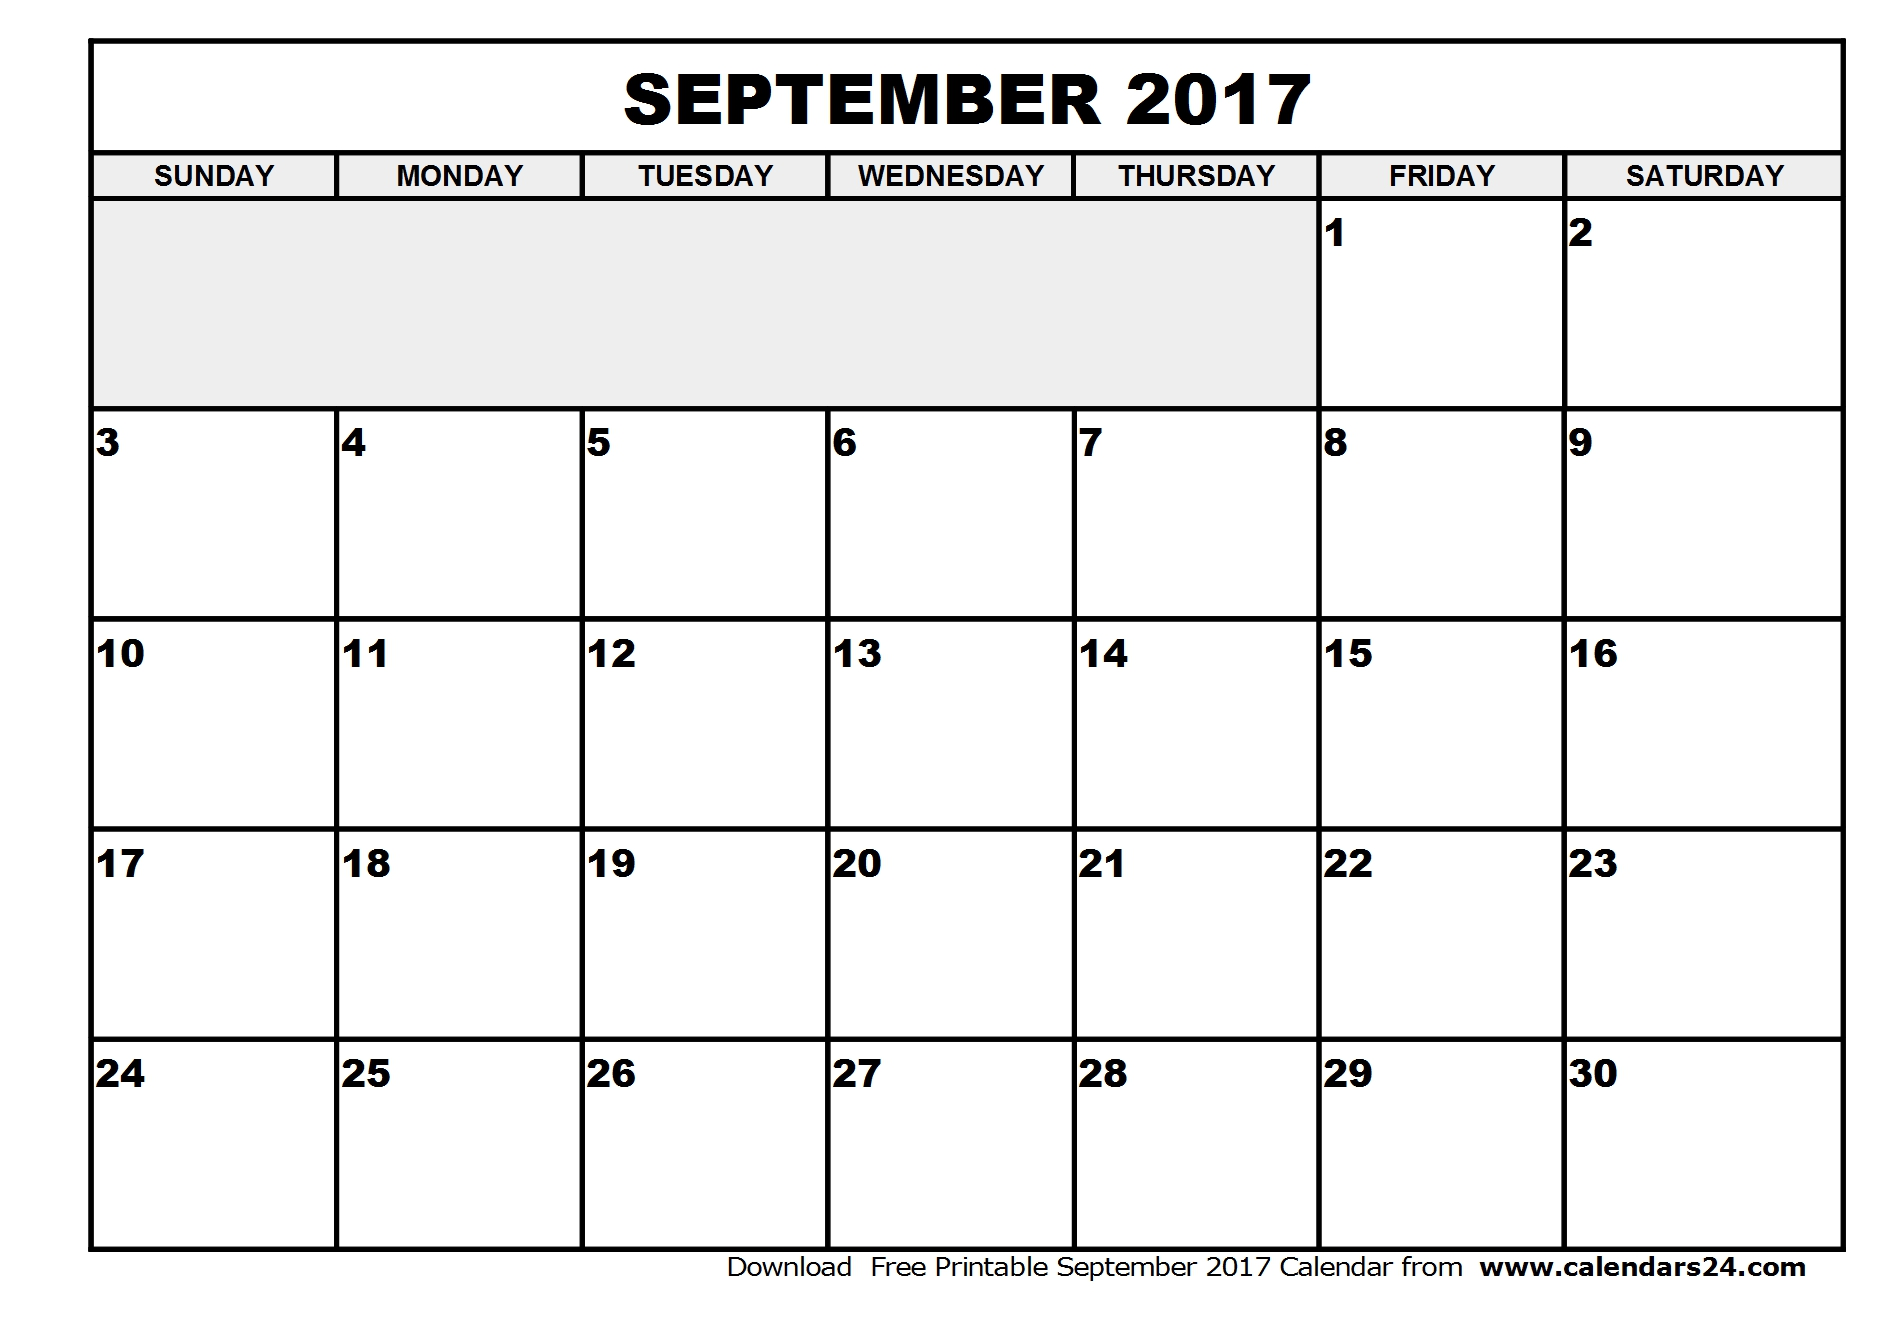 September 2017 Calendar With US Holidays